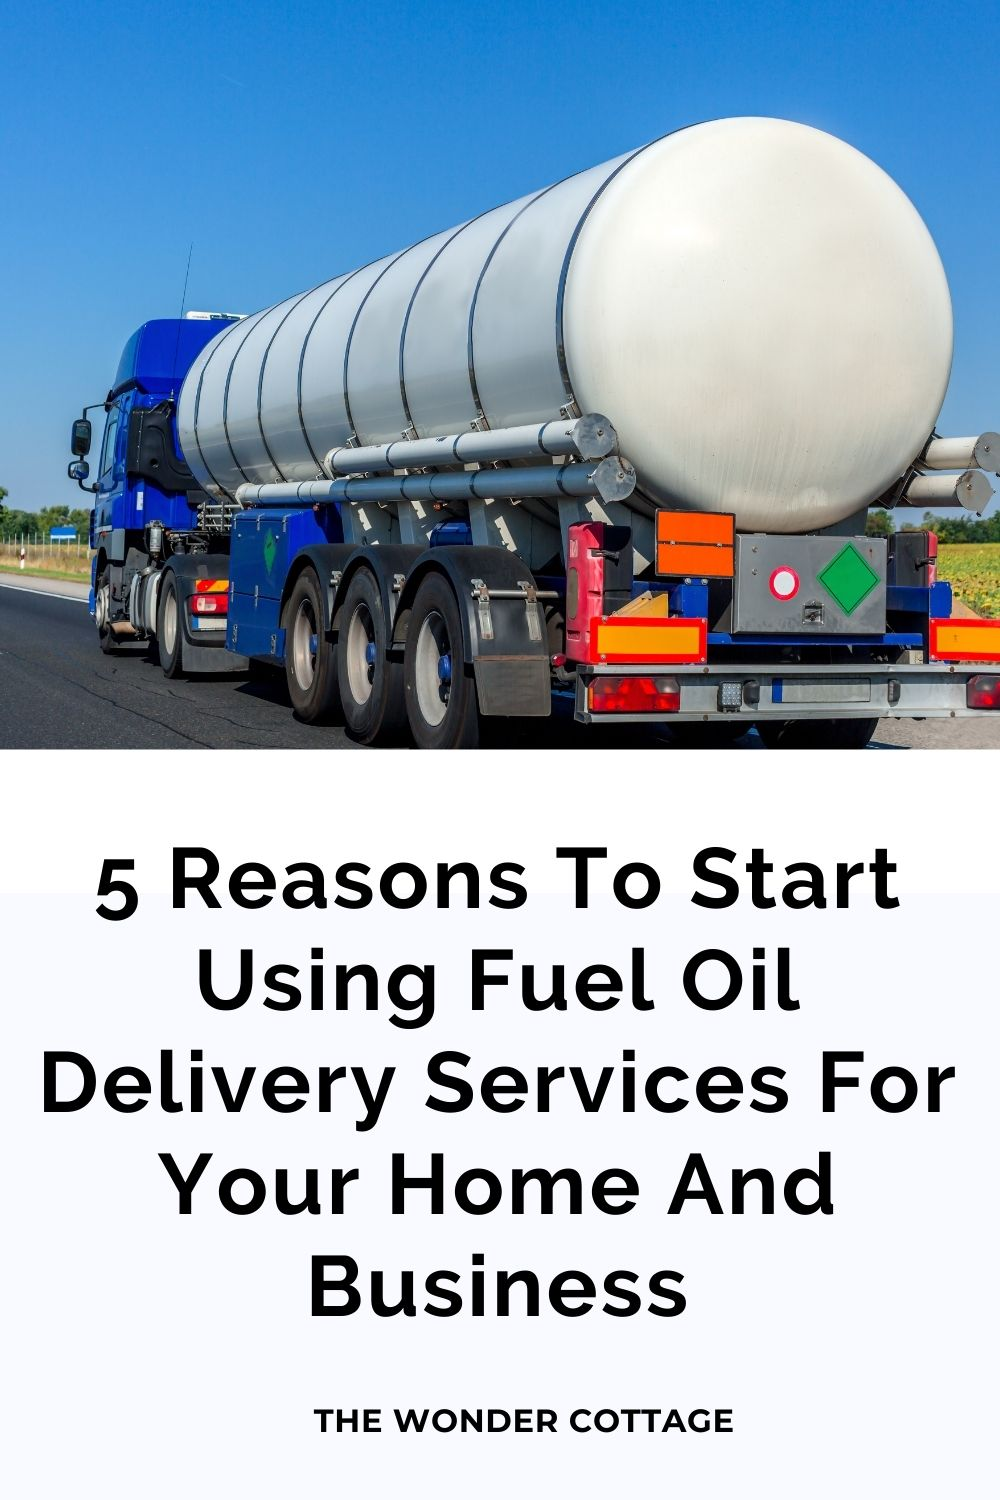 5 Reasons To Start Using Fuel Oil Delivery Services For Your Home And Business